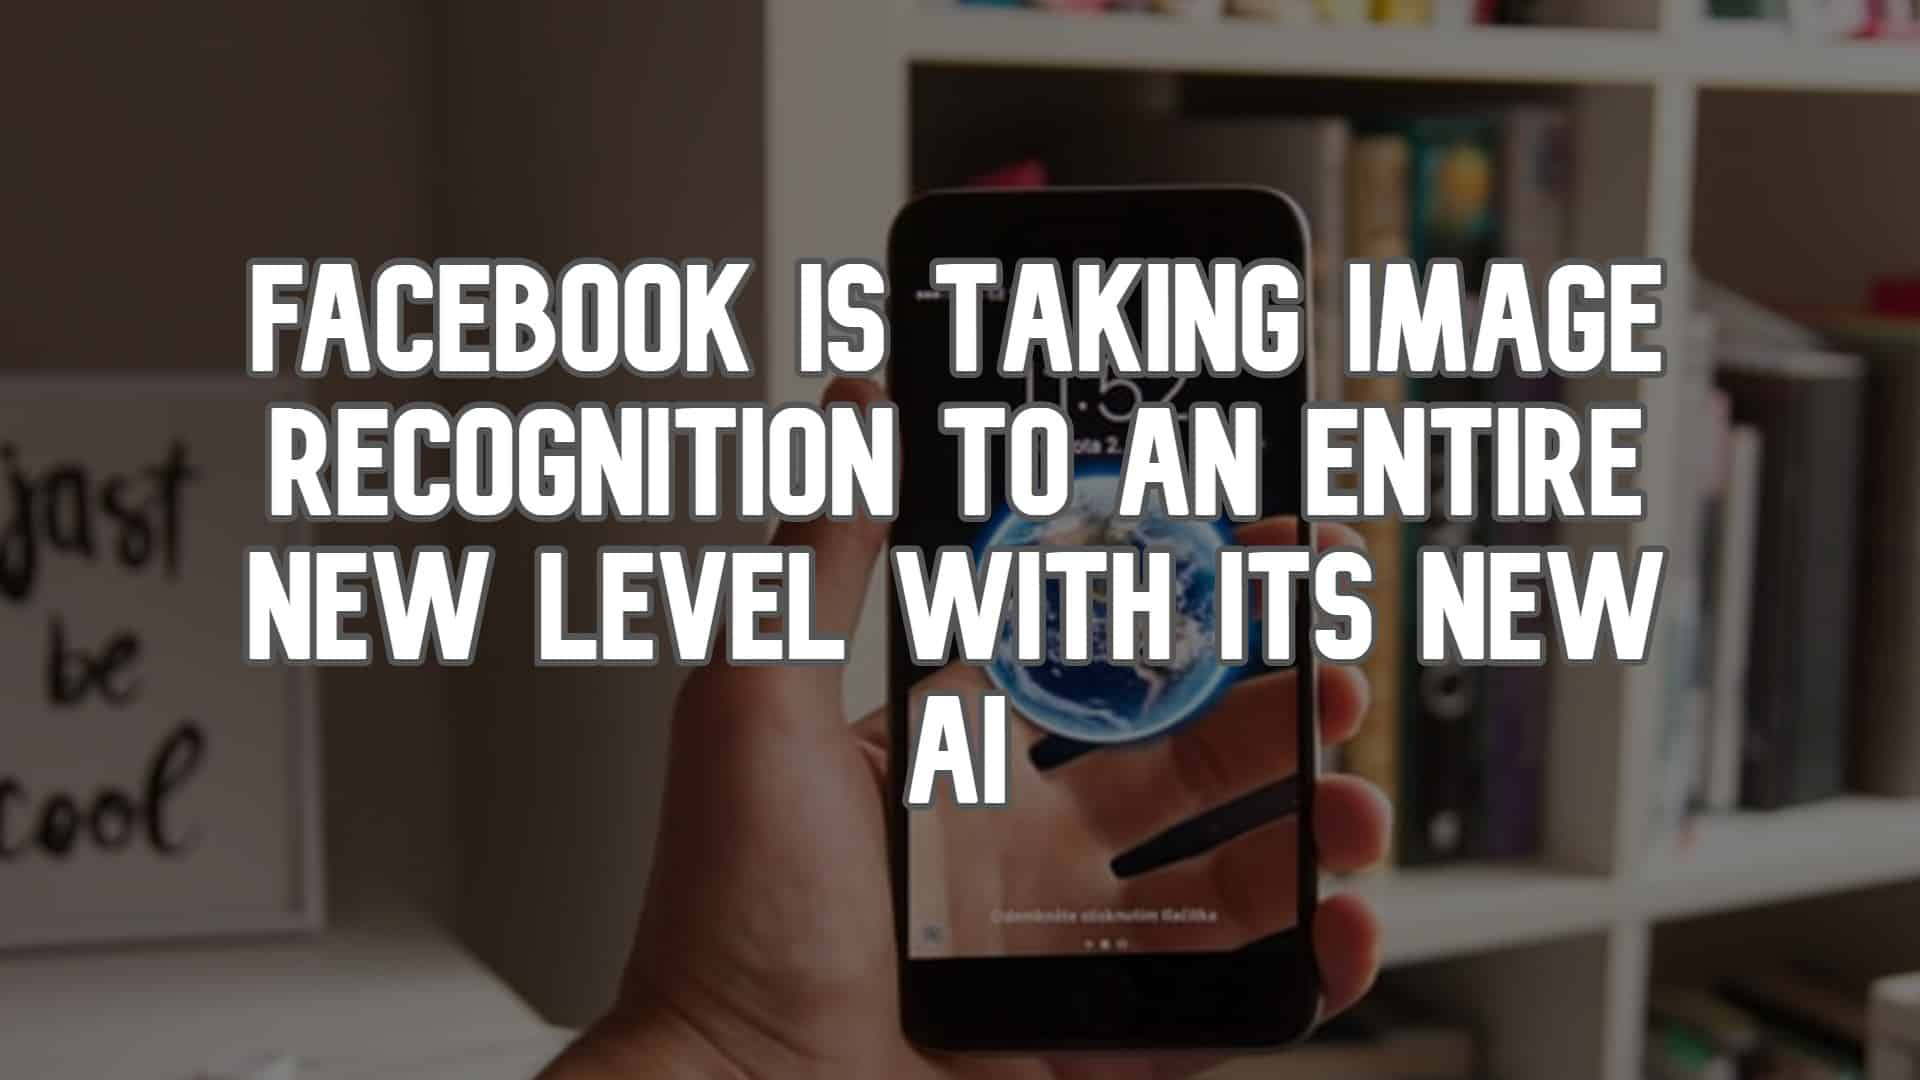 Facebook is Taking Image Recognition to an Entire New Level with its New AI